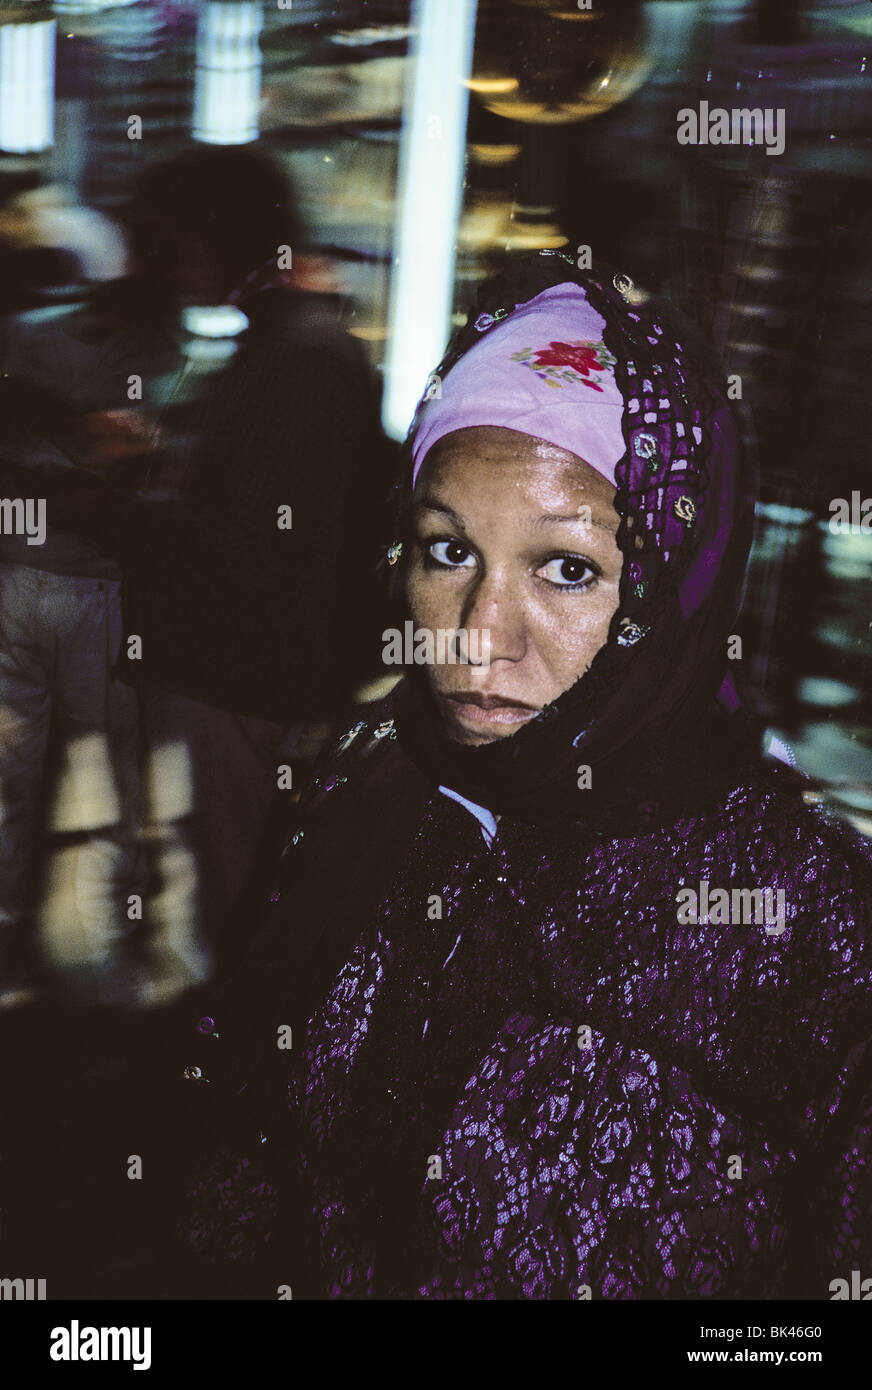 Profile of a woman wearing a headscarf, Egypt - Stock Image